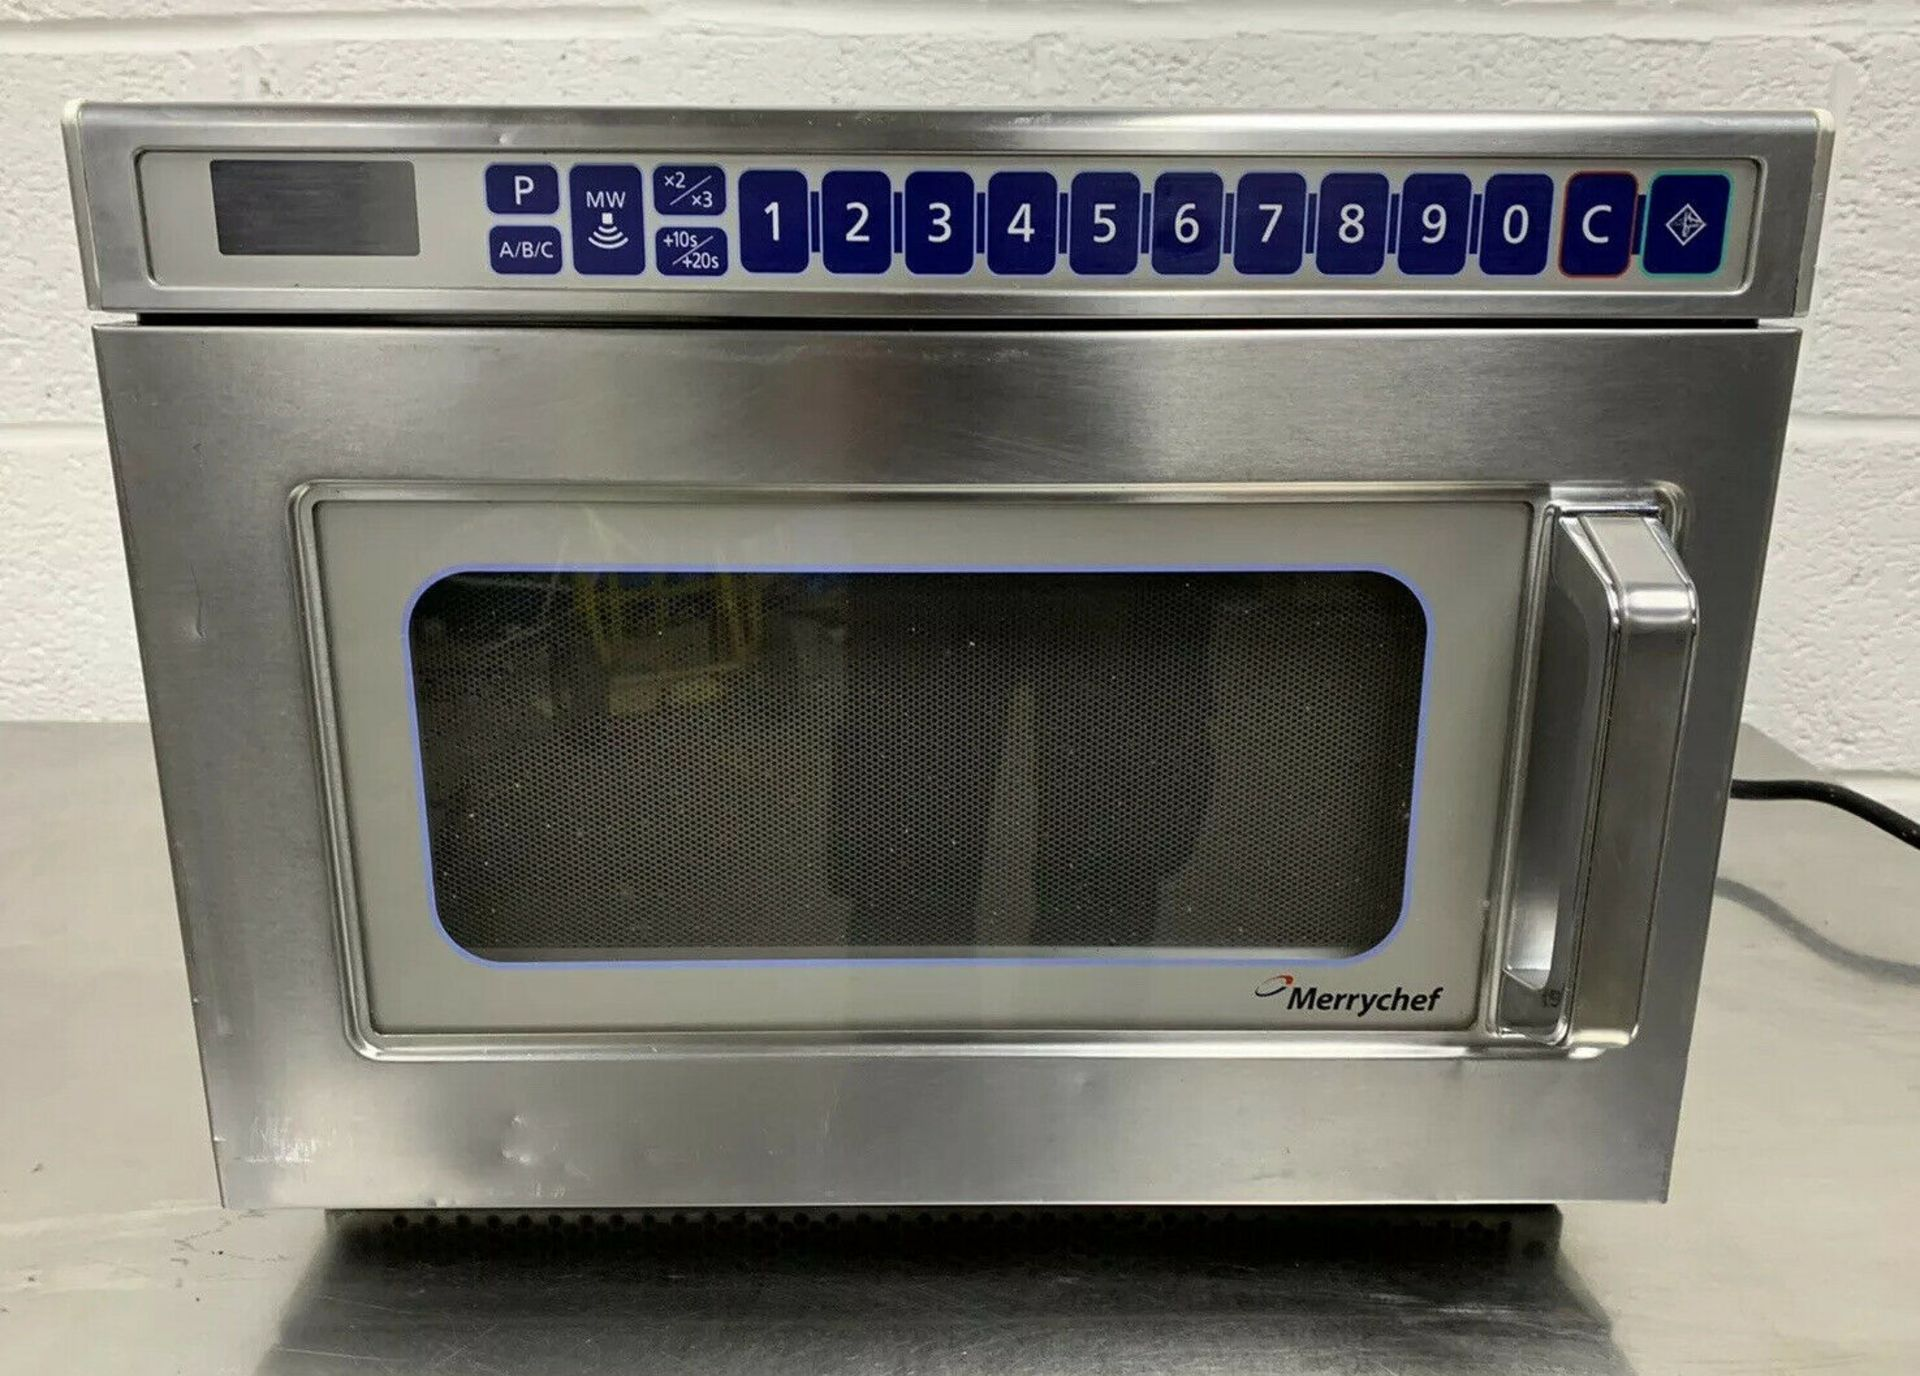 Lot 27 - Merrychef MD1800 Microwave Oven 2017